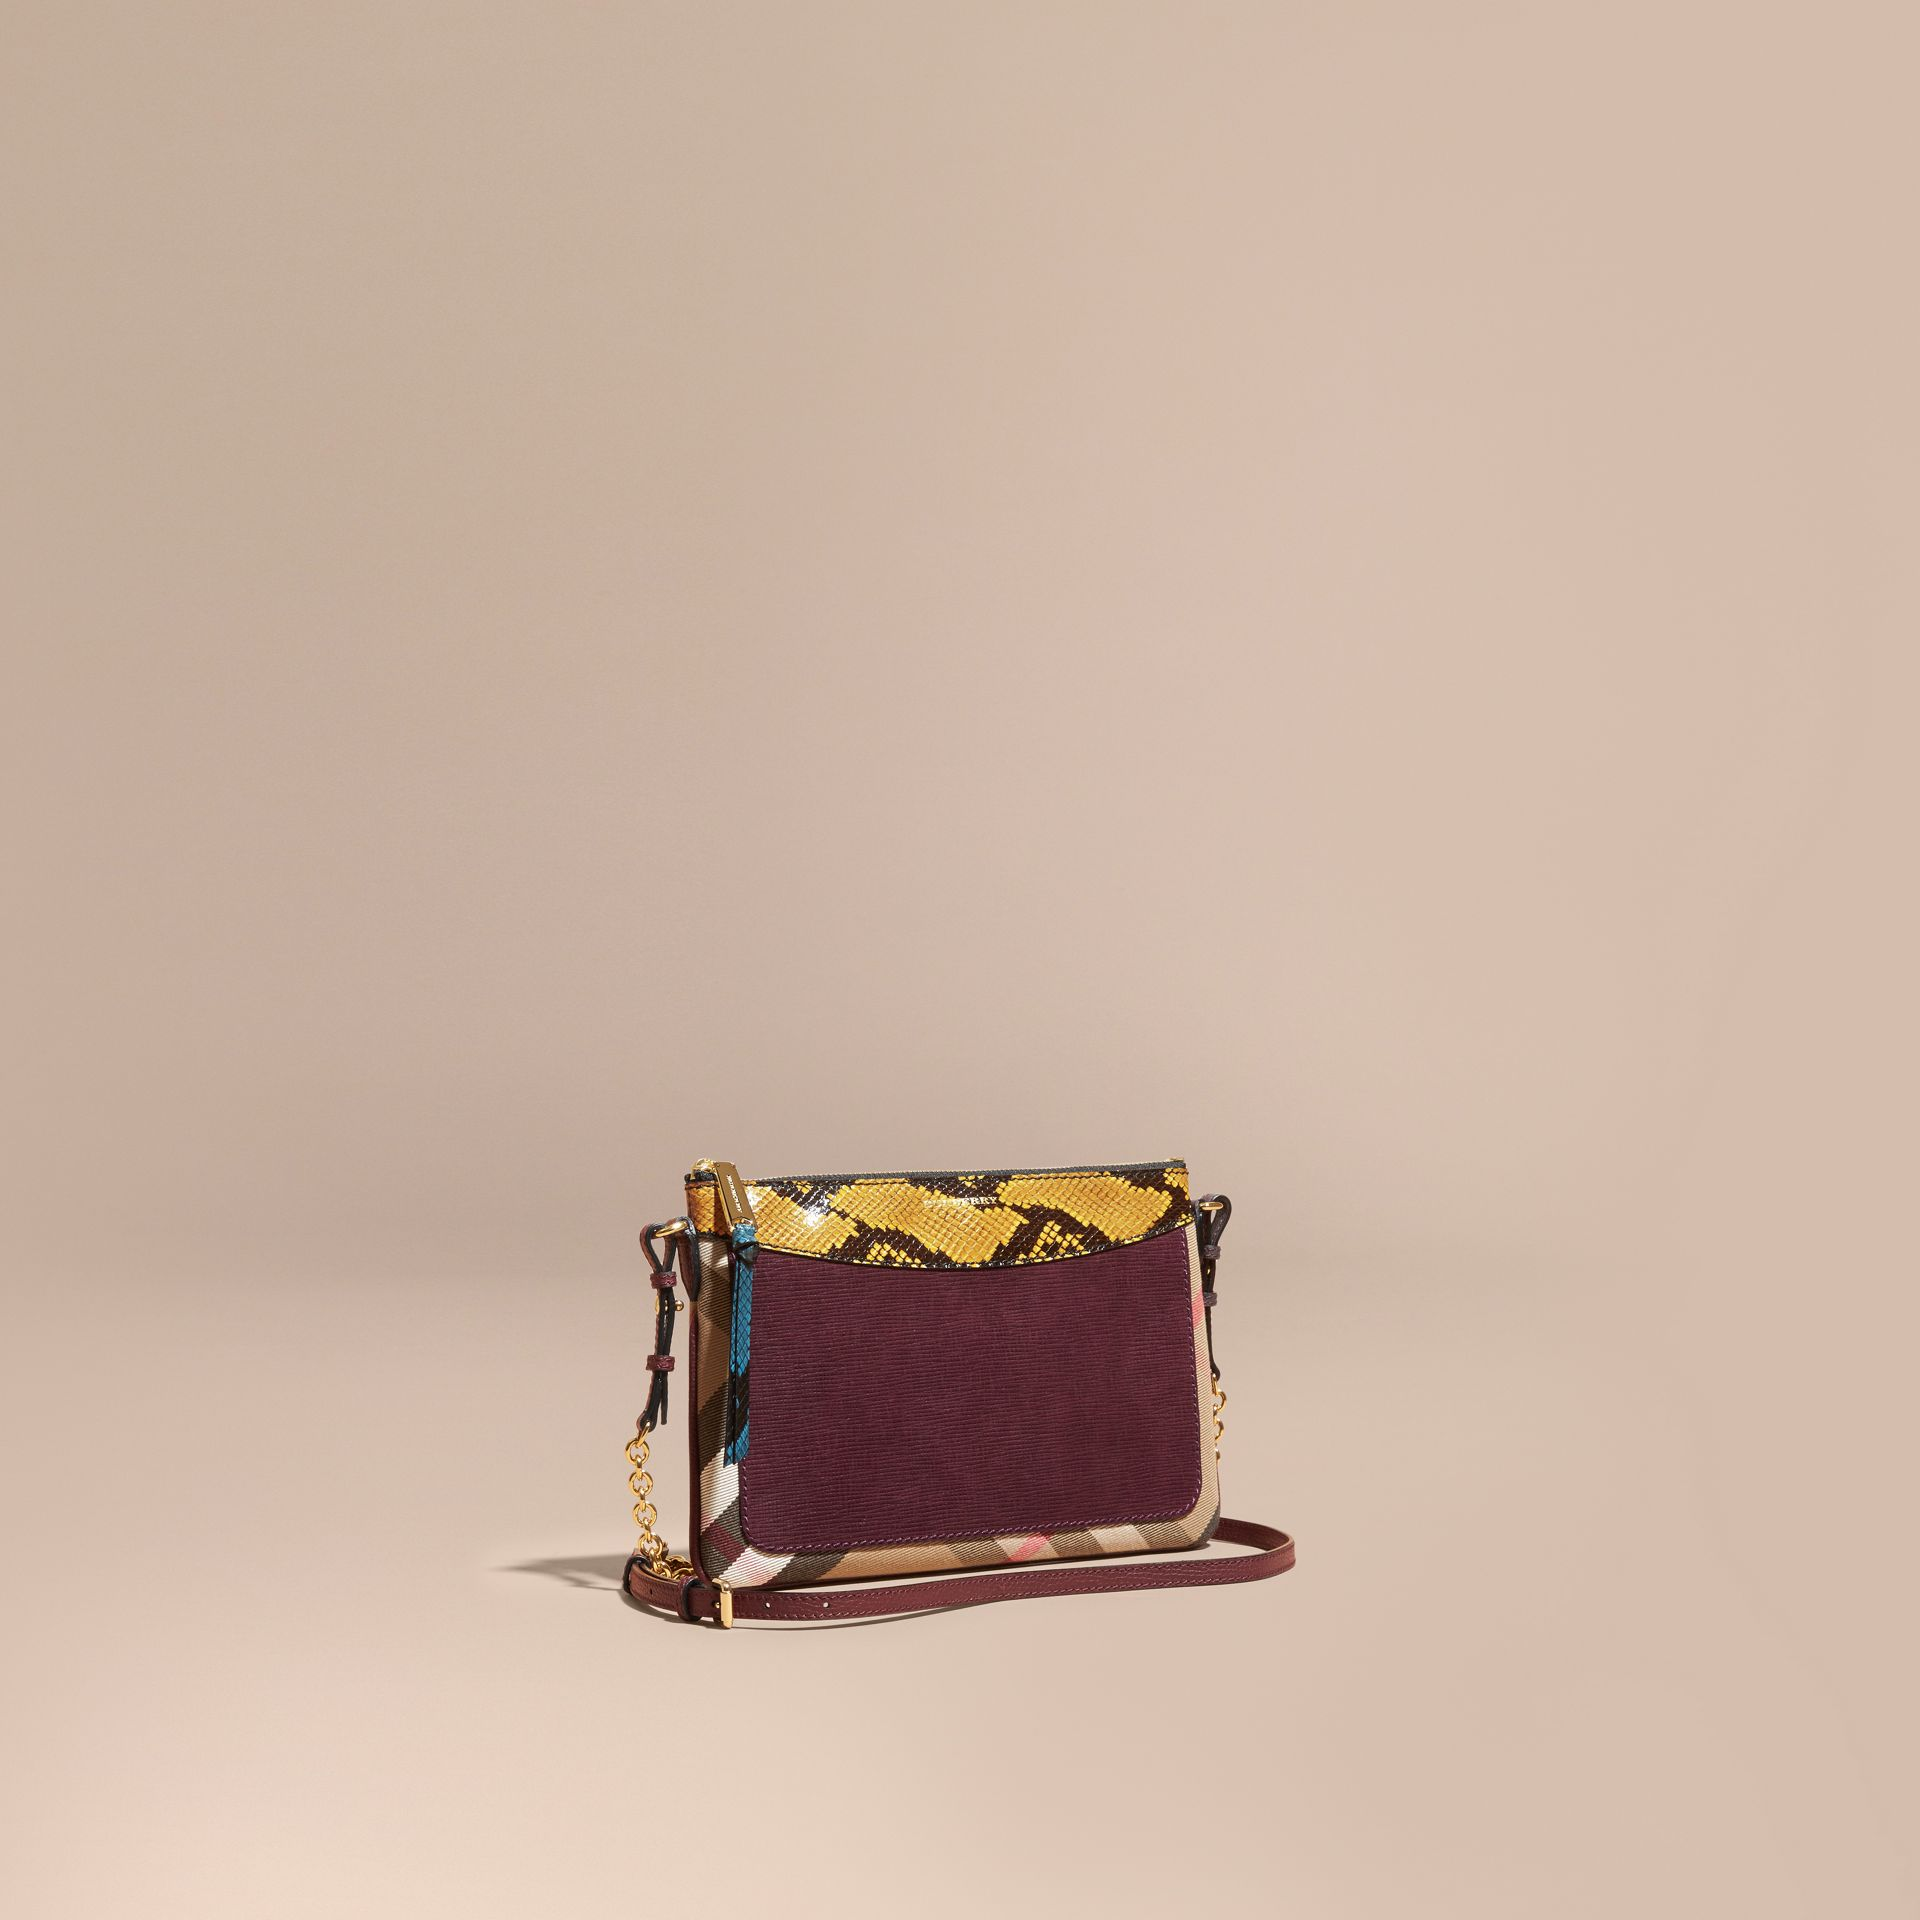 Leather, House Check and Snakeskin Clutch Bag in Elderberry - gallery image 1